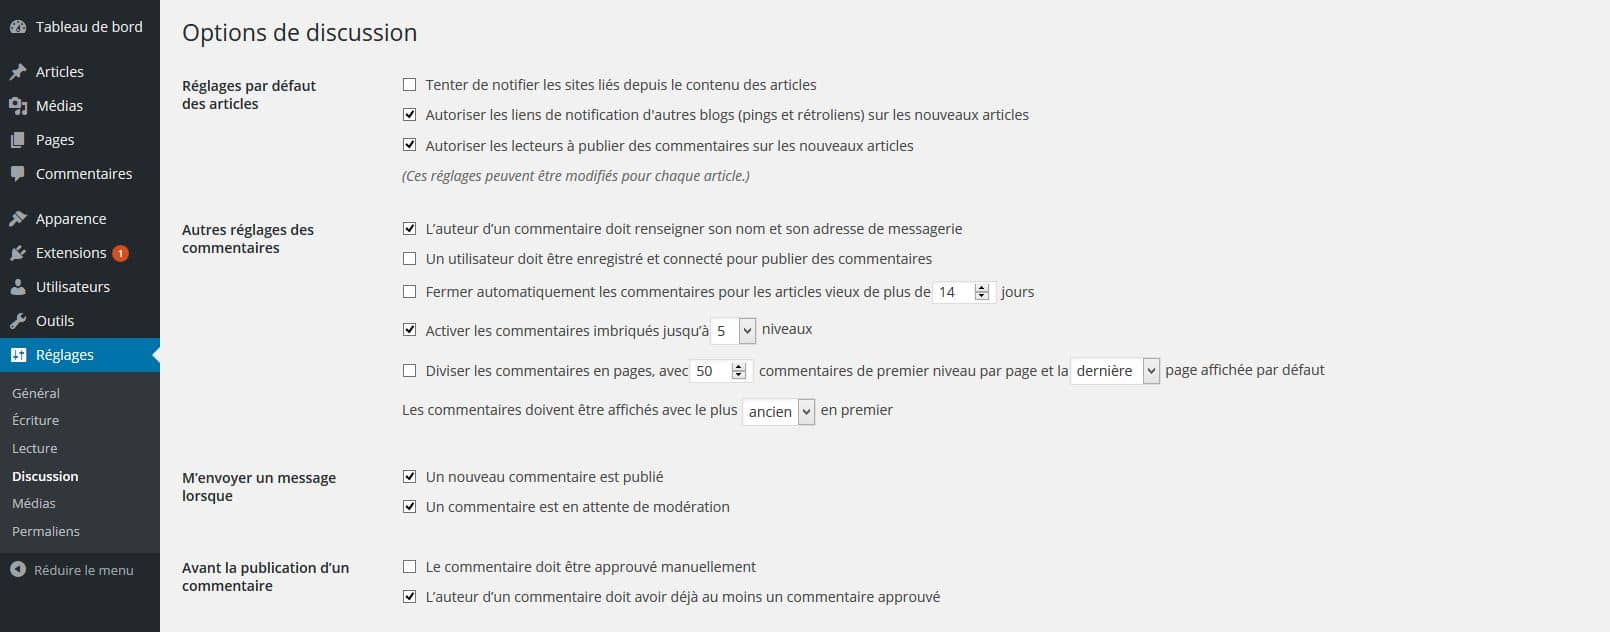 options de discussion wordpress